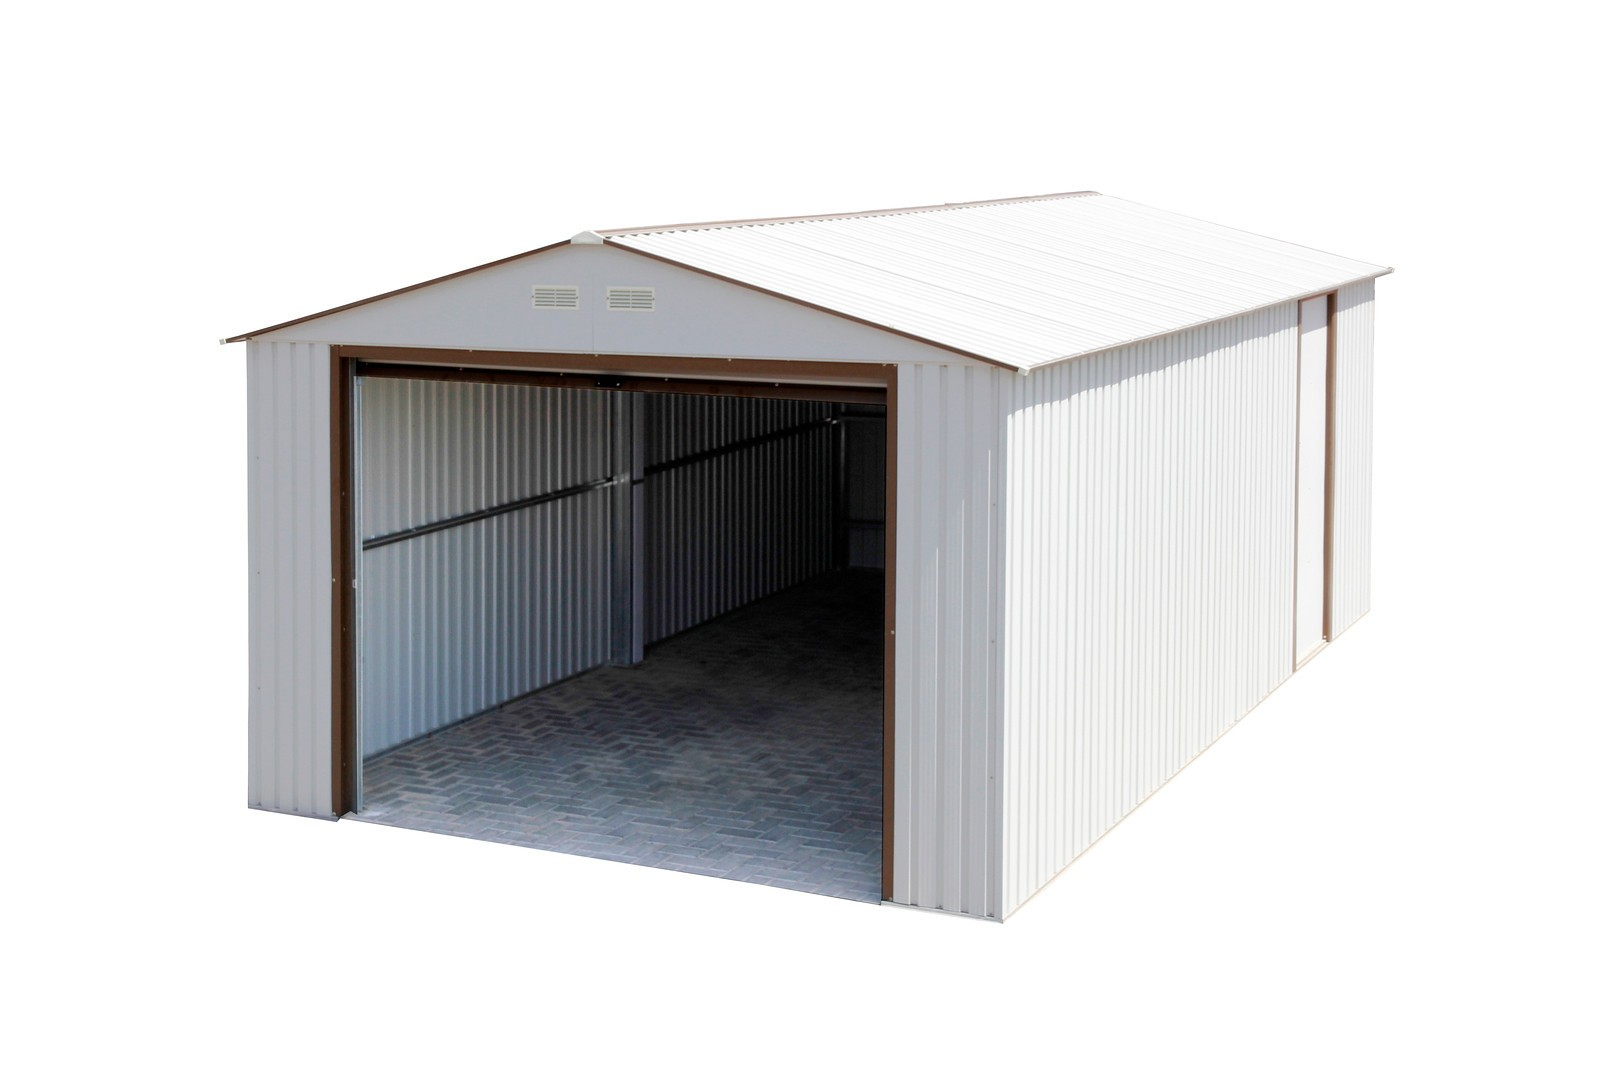 Duramax 50931 Metal Garage – 12'x20' Metal Storage Shed – Off White with Brown Trim